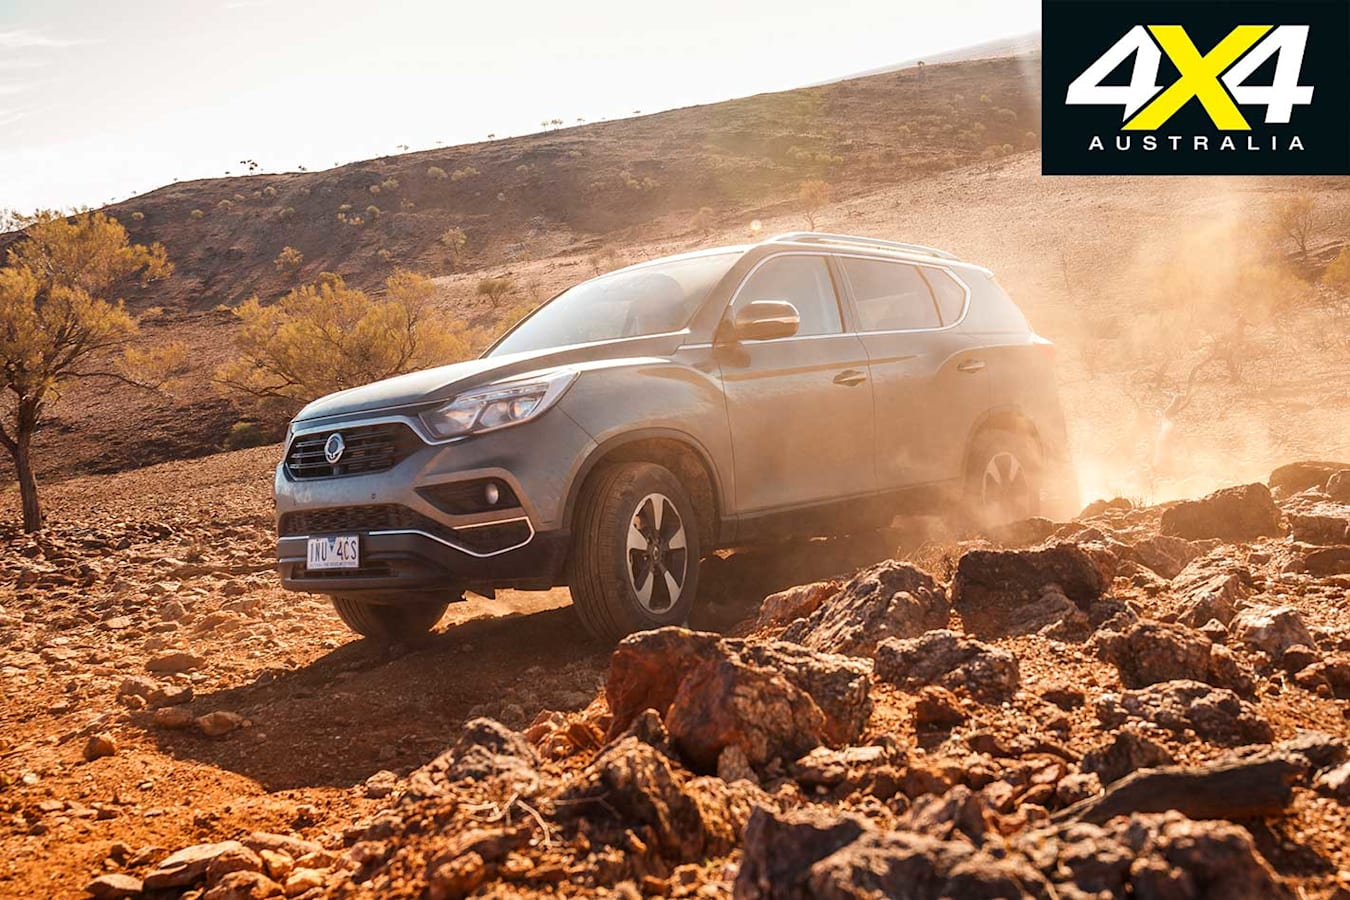 4 X 4 Of The Year 2019 Ssang Yong Rexton ELX Trail Driving Jpg